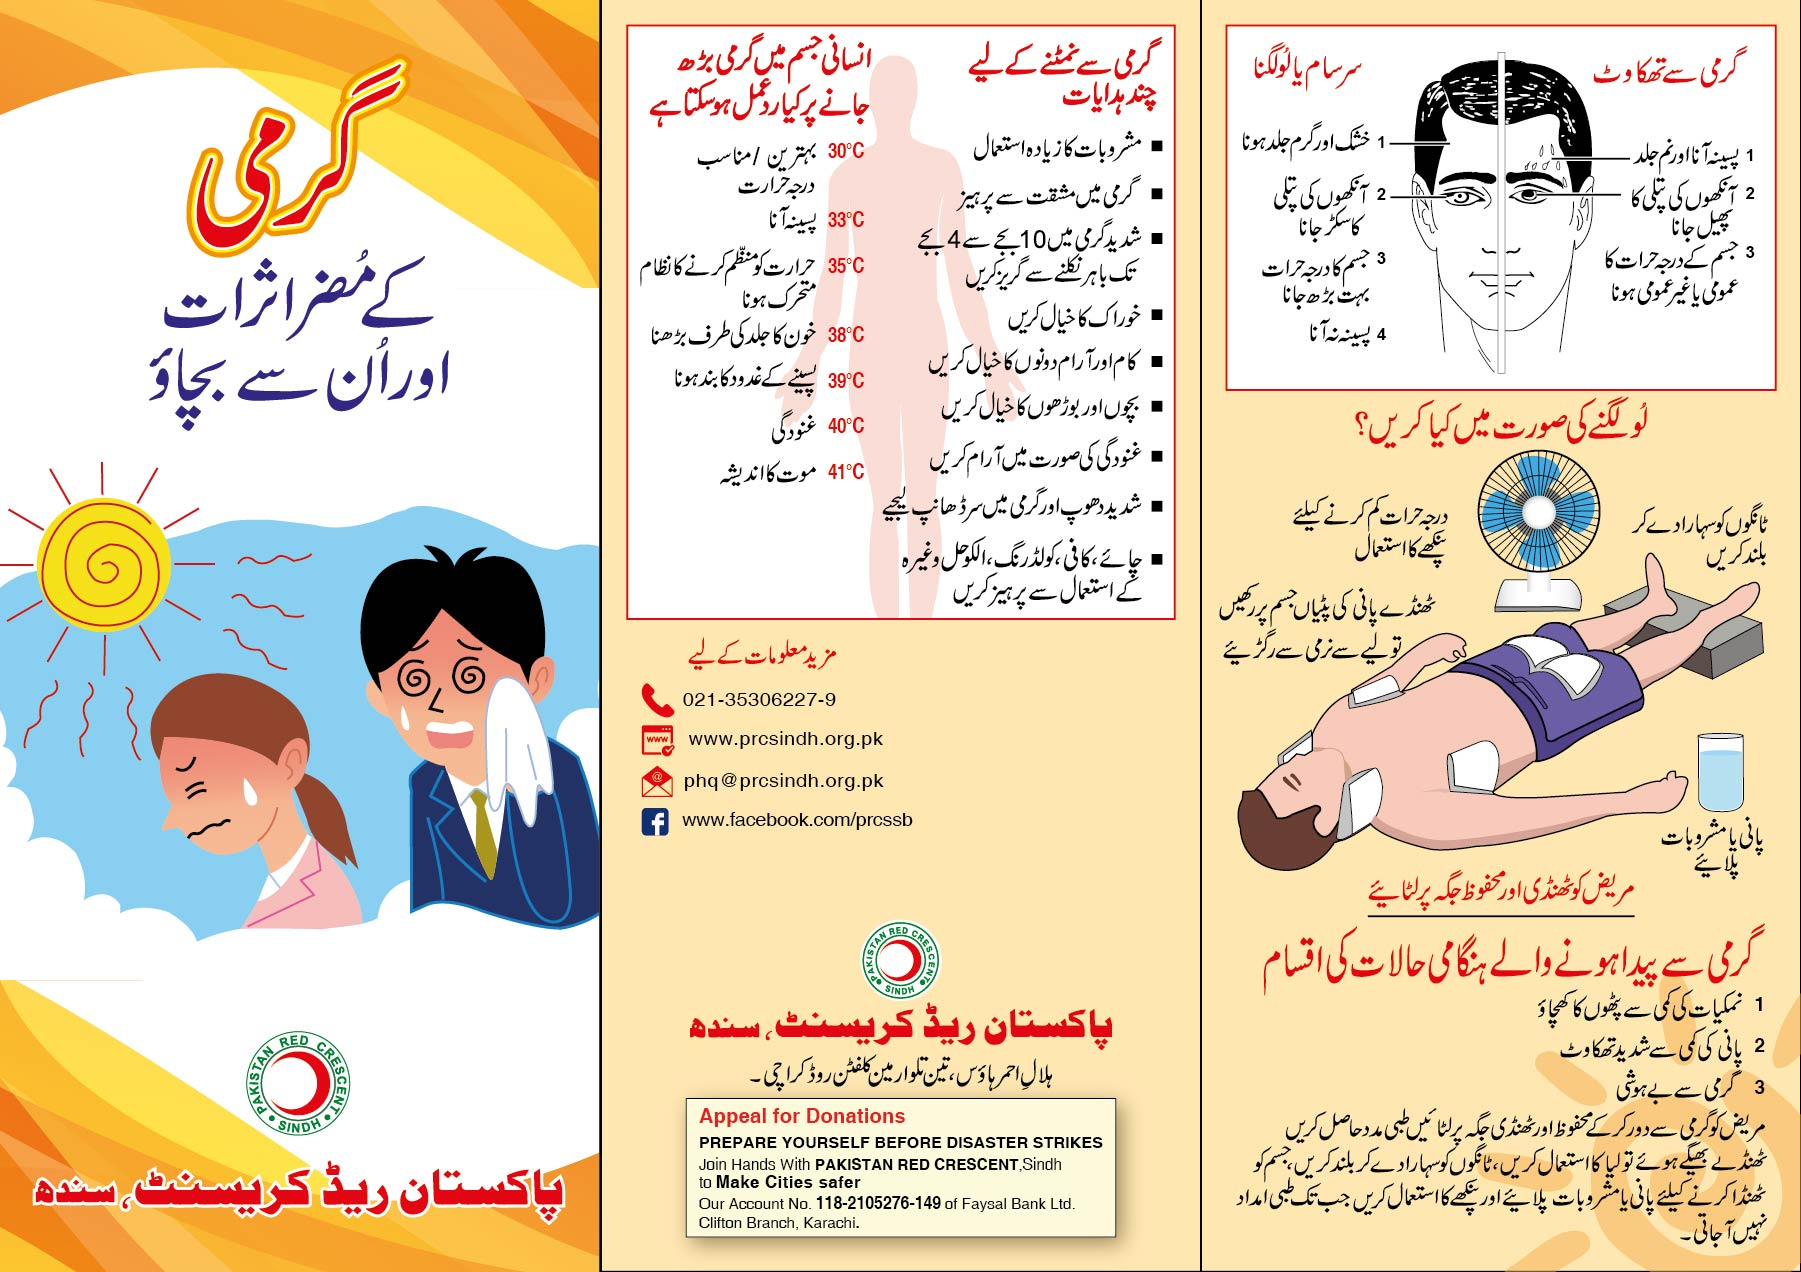 stroke brochure Neurological disorders and stroke 2018 conference provides platform to encourage people to take preventive measures and control of their health against the neurological disorders and stroke based on a full range of information and access to education in the field of diagnosis and treatment of neurological disorders and stroke.